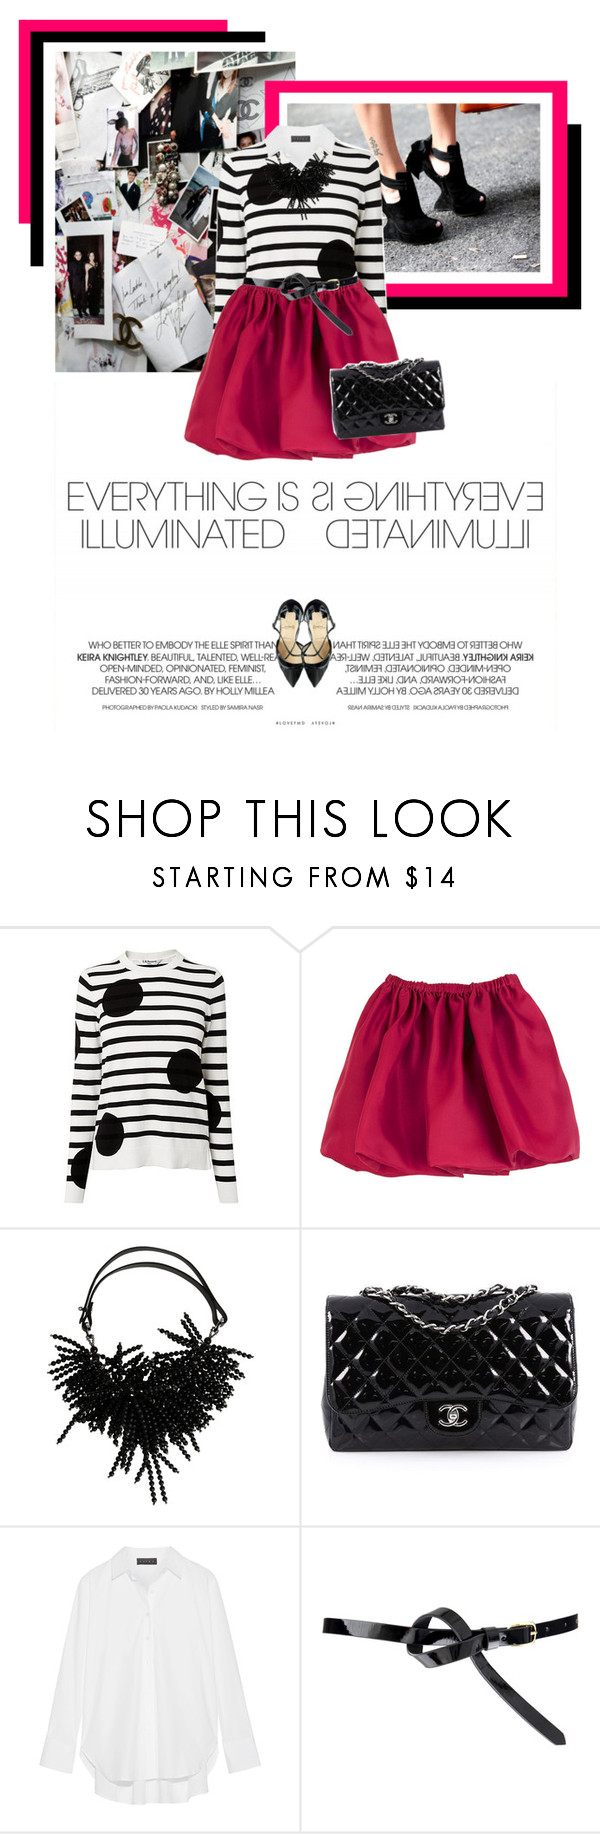 """Dots and Stripes"" by veronicamastalli ❤ liked on Polyvore featuring Chanel, Miu Miu, Brunello Cucinelli, Hatch and ASOS"